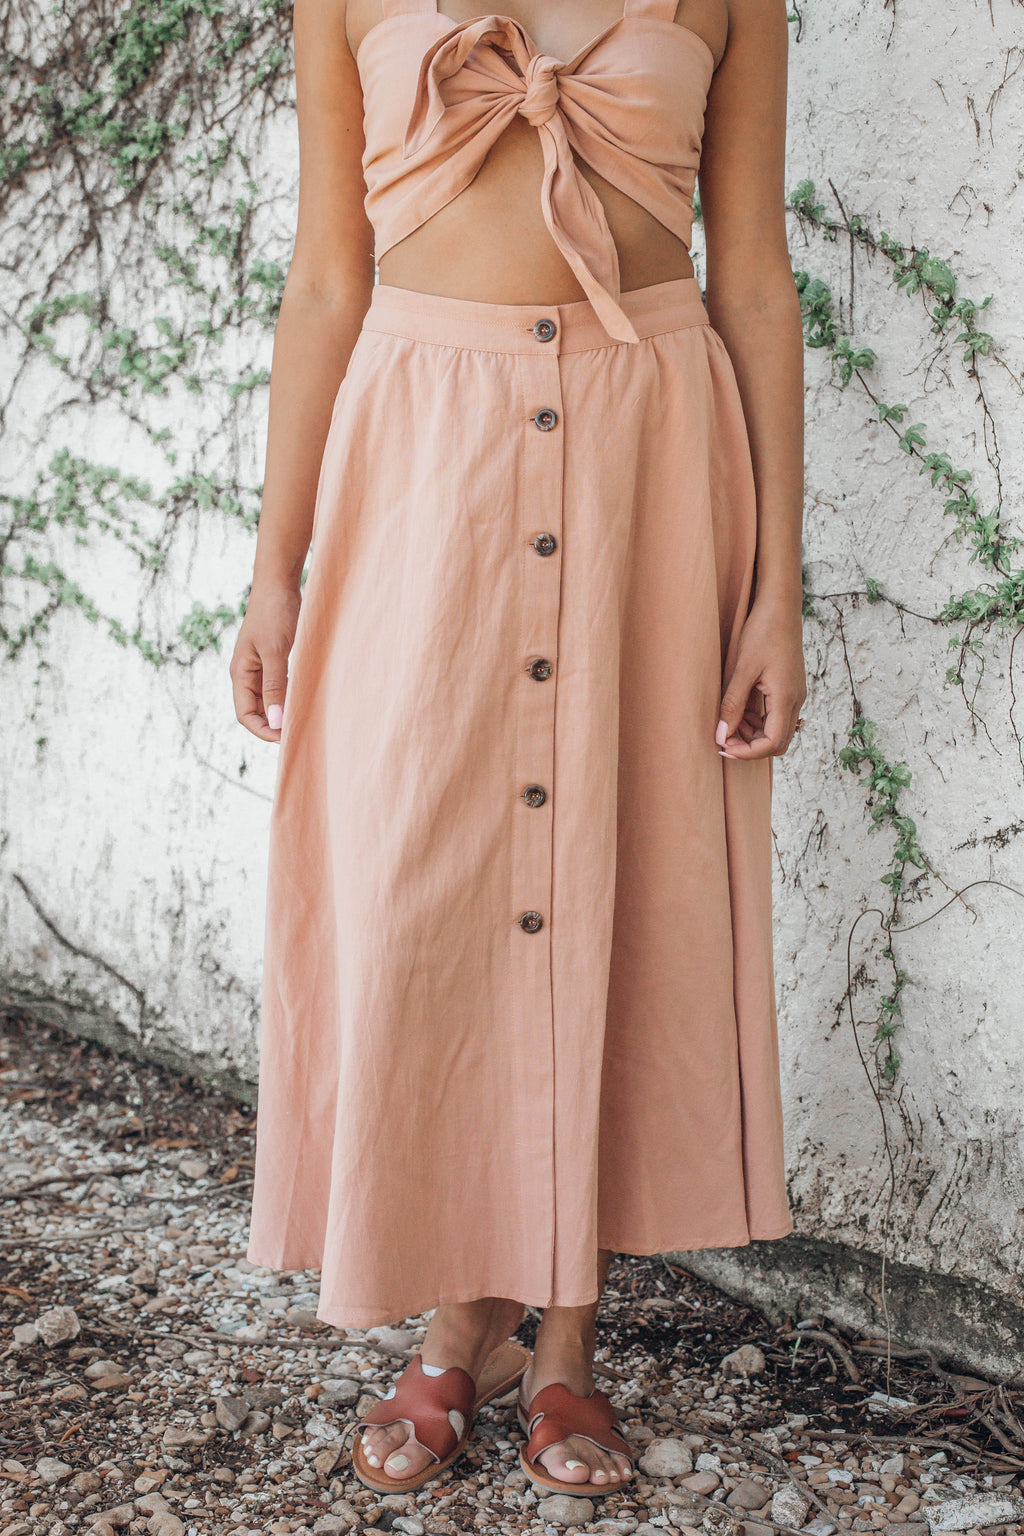 Absolute Goddess Skirt